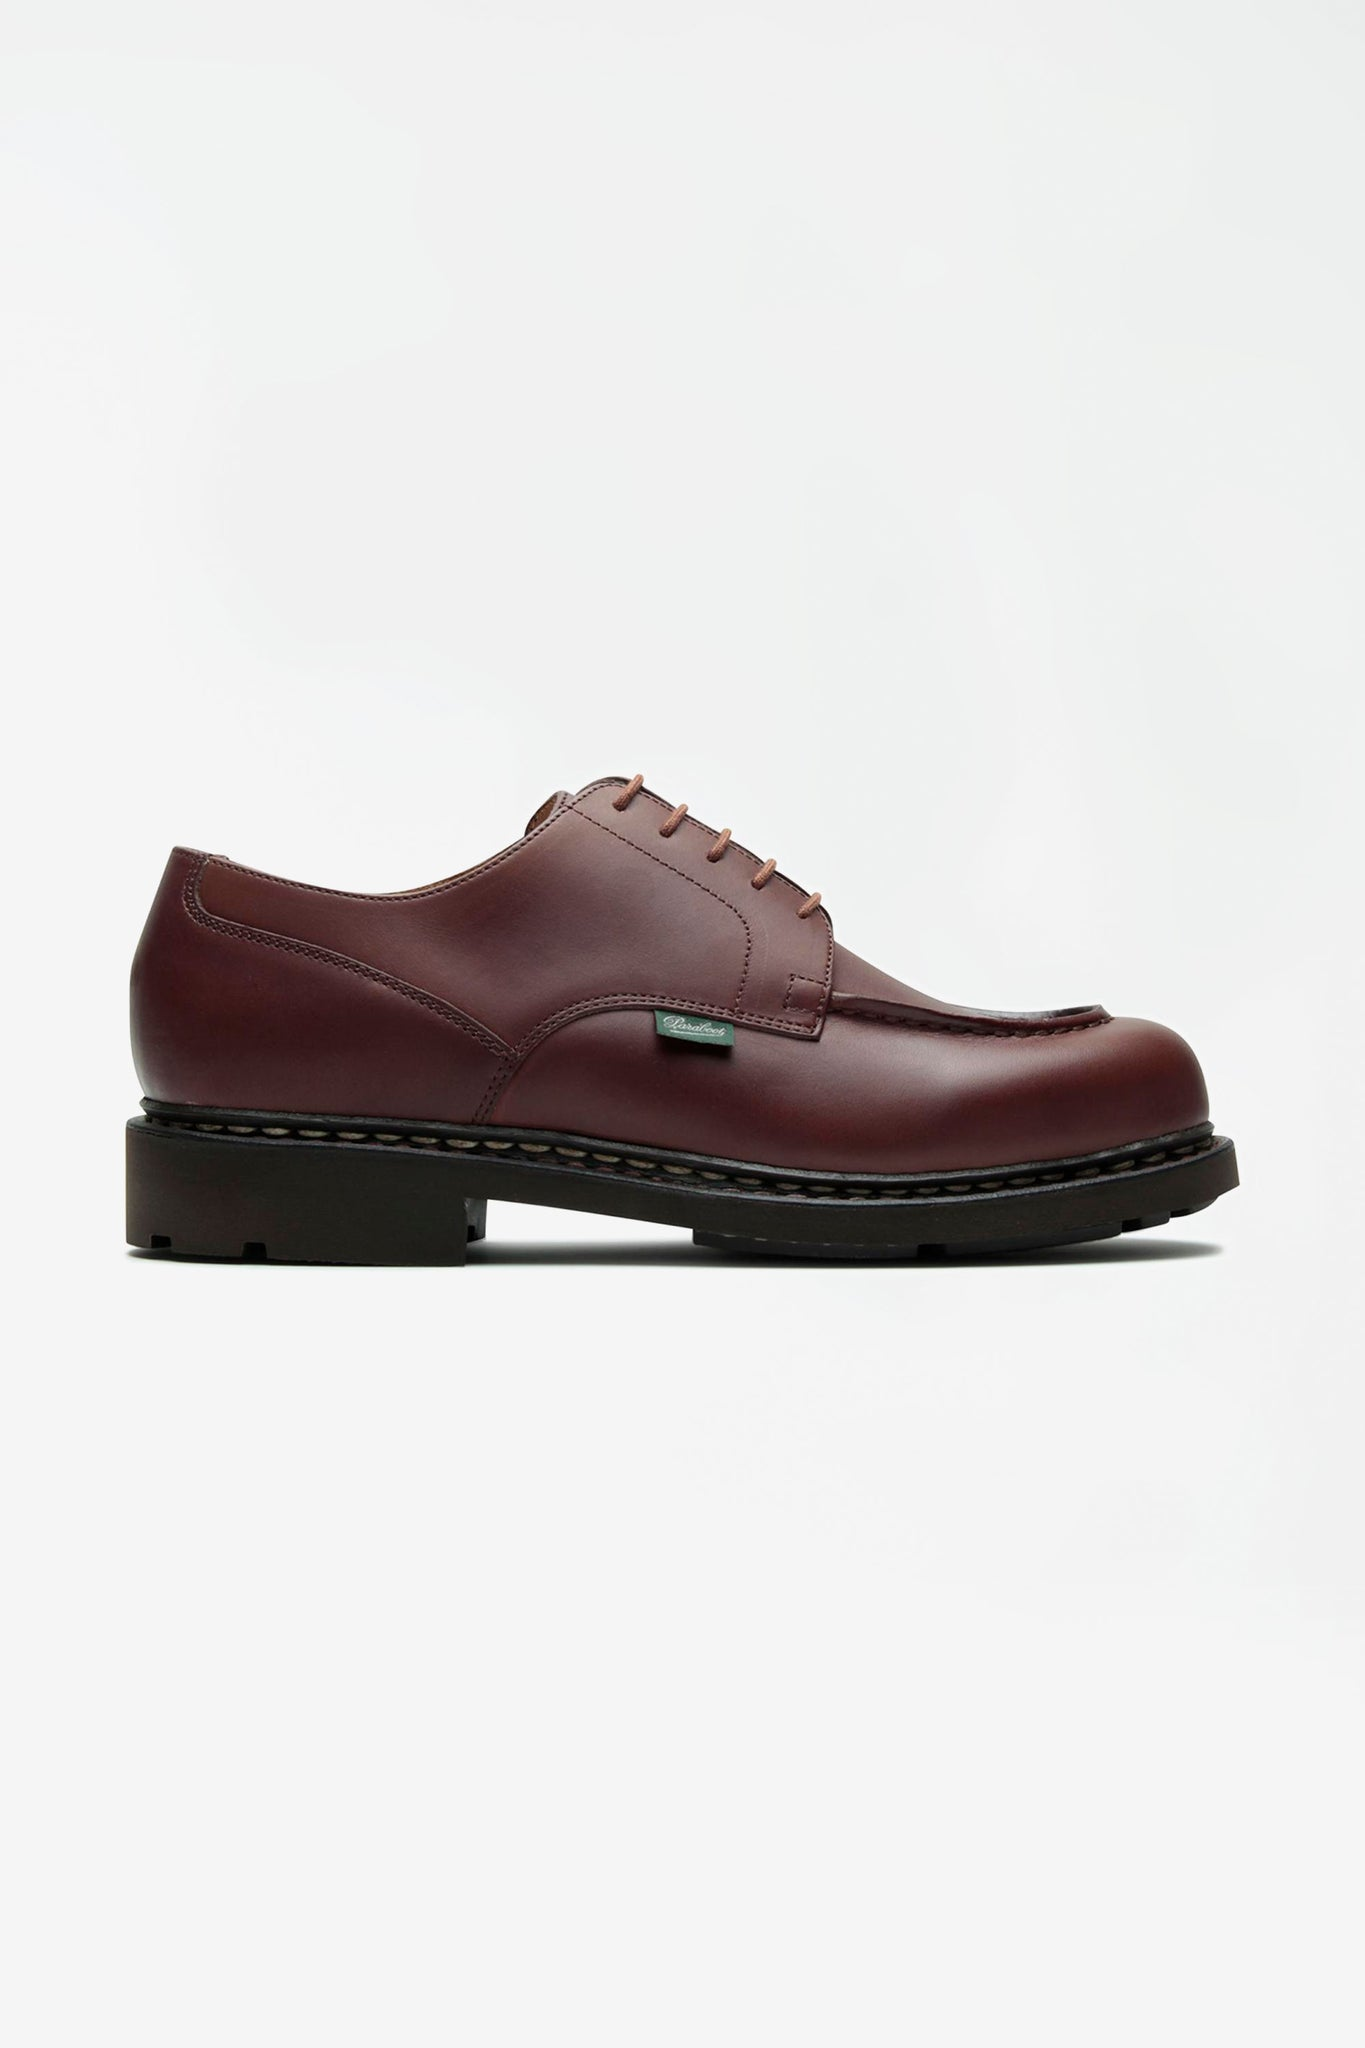 Chambord shoes tex marron-lis marron